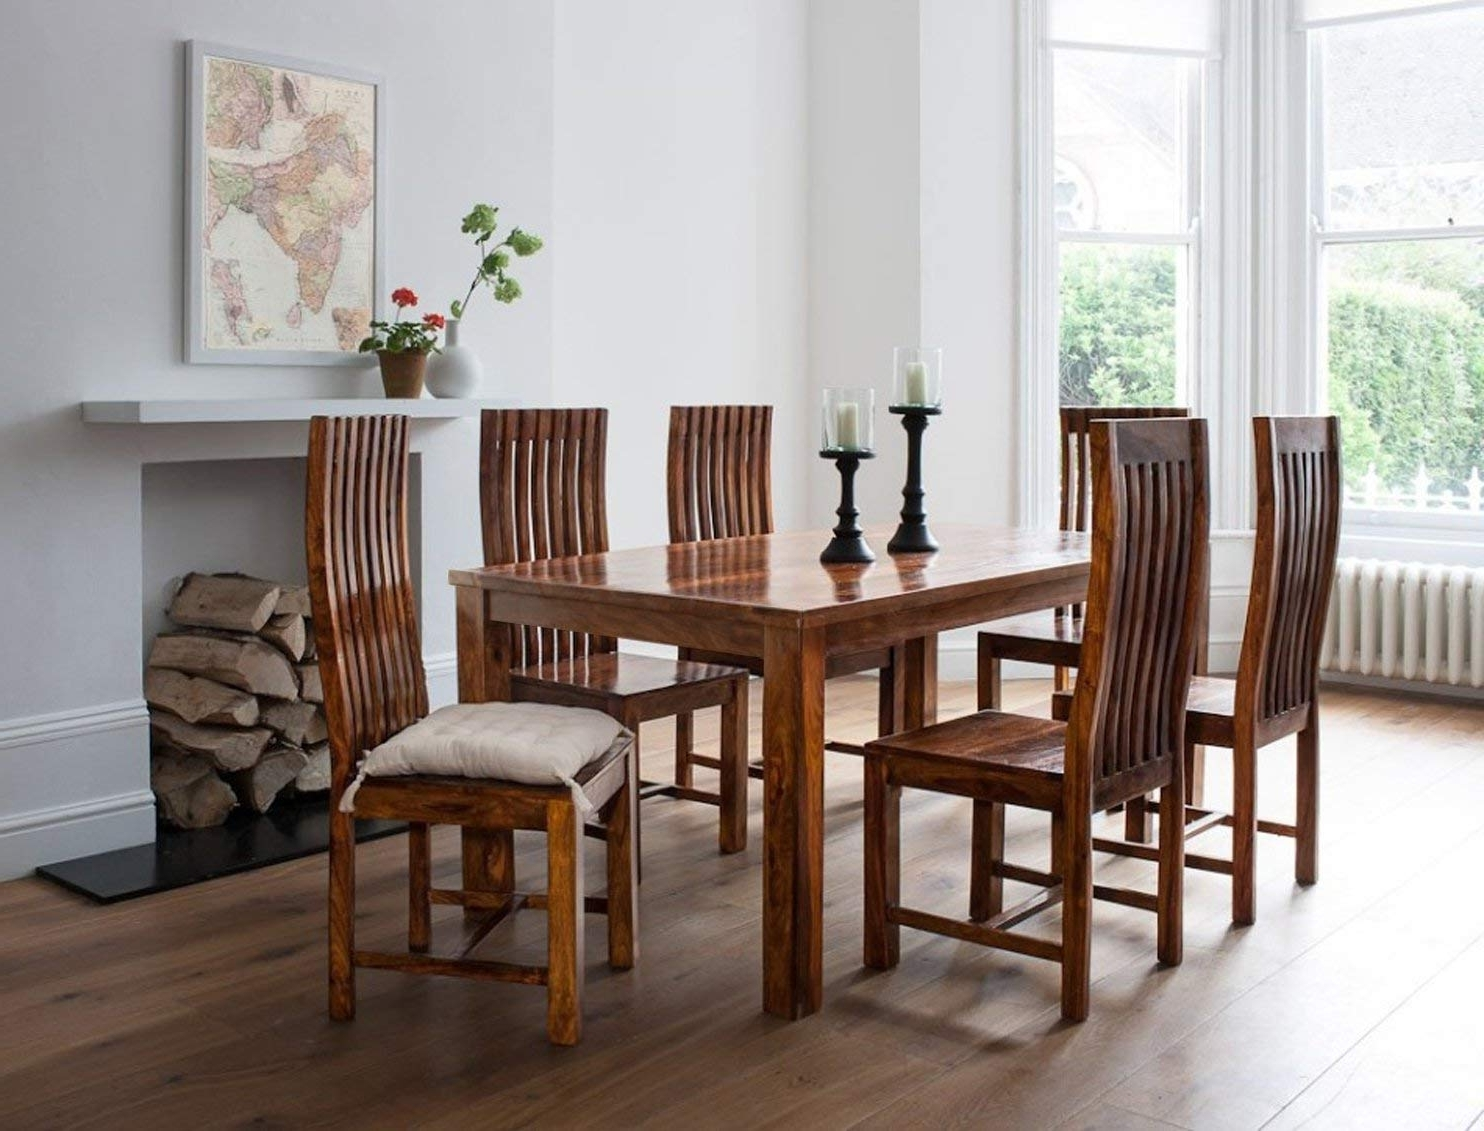 Lifeestyle Handcrafted Sheesham Wood 6 Seater Dining Set (Honey Throughout Well Known Sheesham Dining Chairs (View 8 of 25)